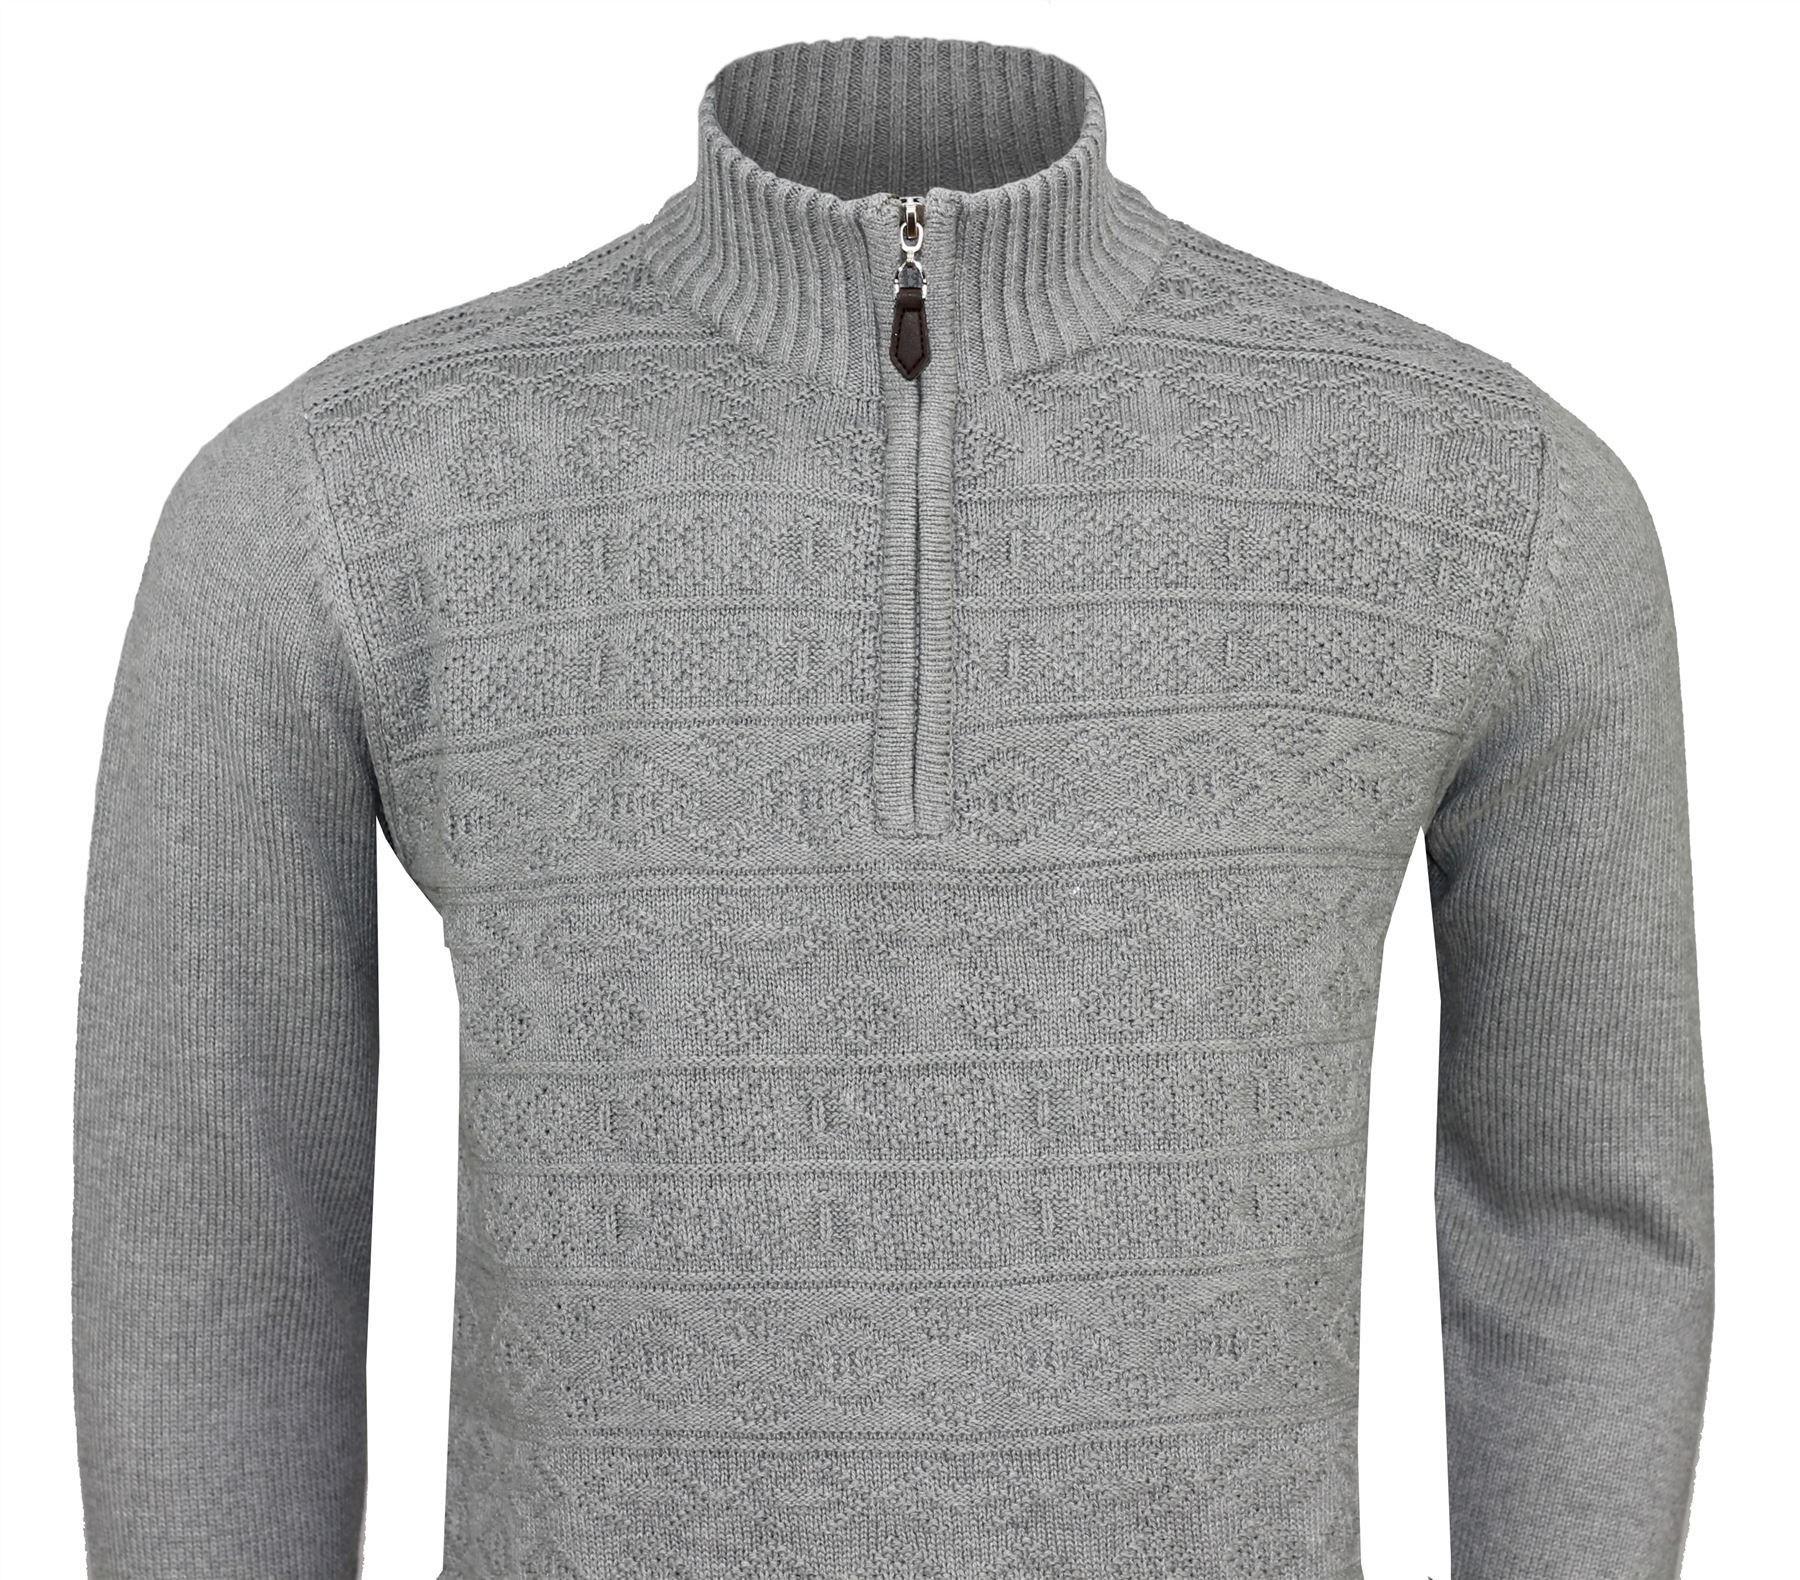 a6c8c74aa610ef Mens Funnel Neck Half Zip Neck Patterned Jumper Long Sleeve Knitted Sweater